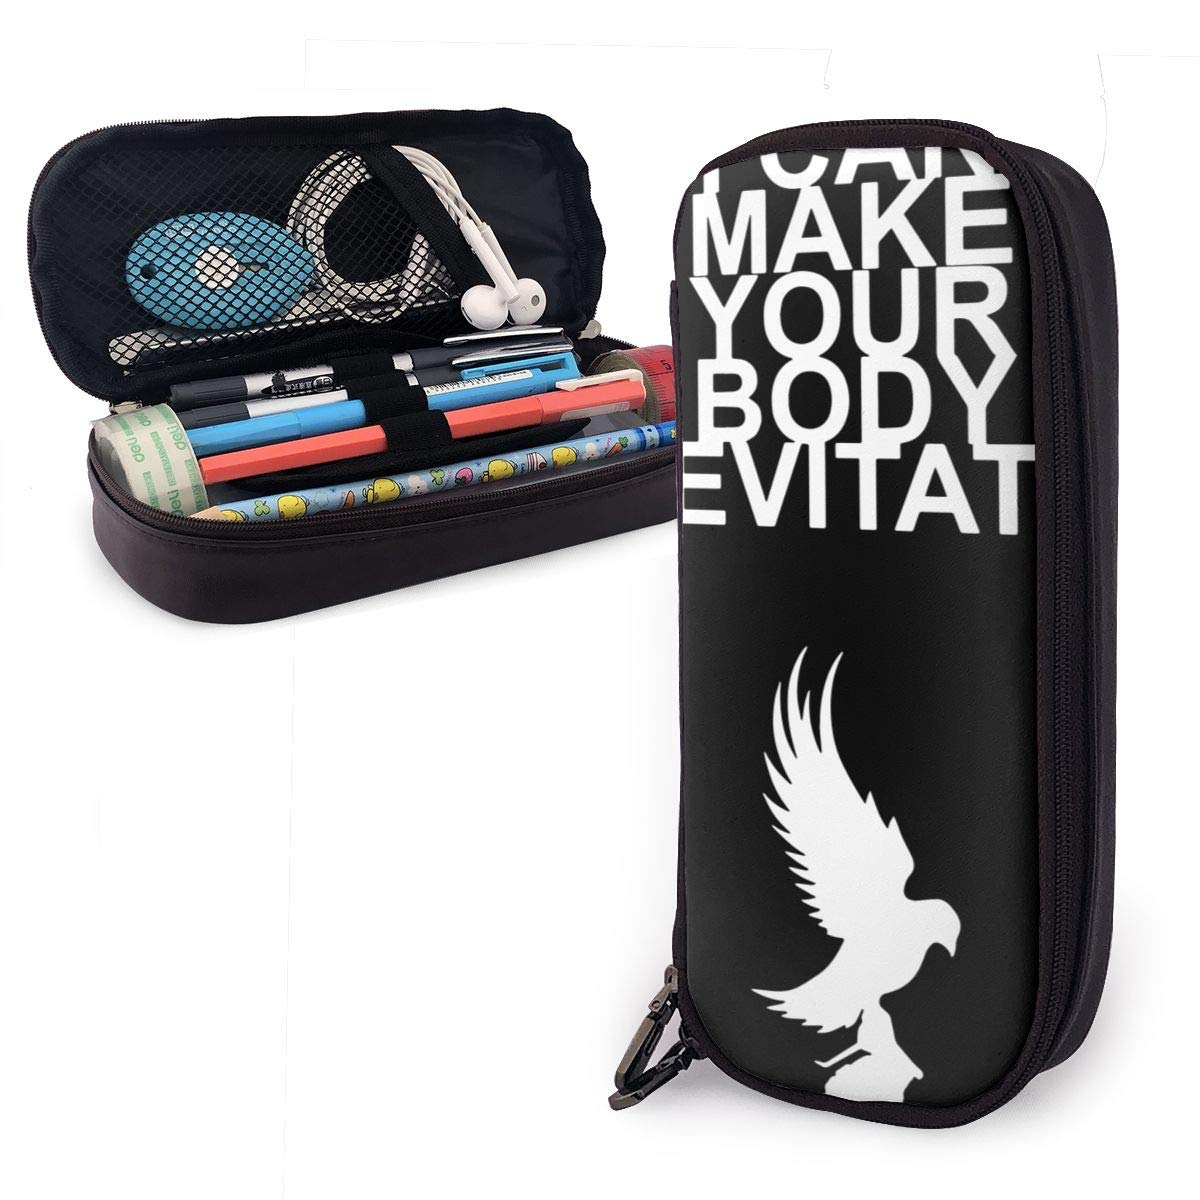 Hollywood Undead Dove and Grenade PU Leather Pencil Case with Zipper, Pouch Stationary Bag for Middle High School College Student Office Girls Boys Kids Adult,Storage Bag Makeup Bag